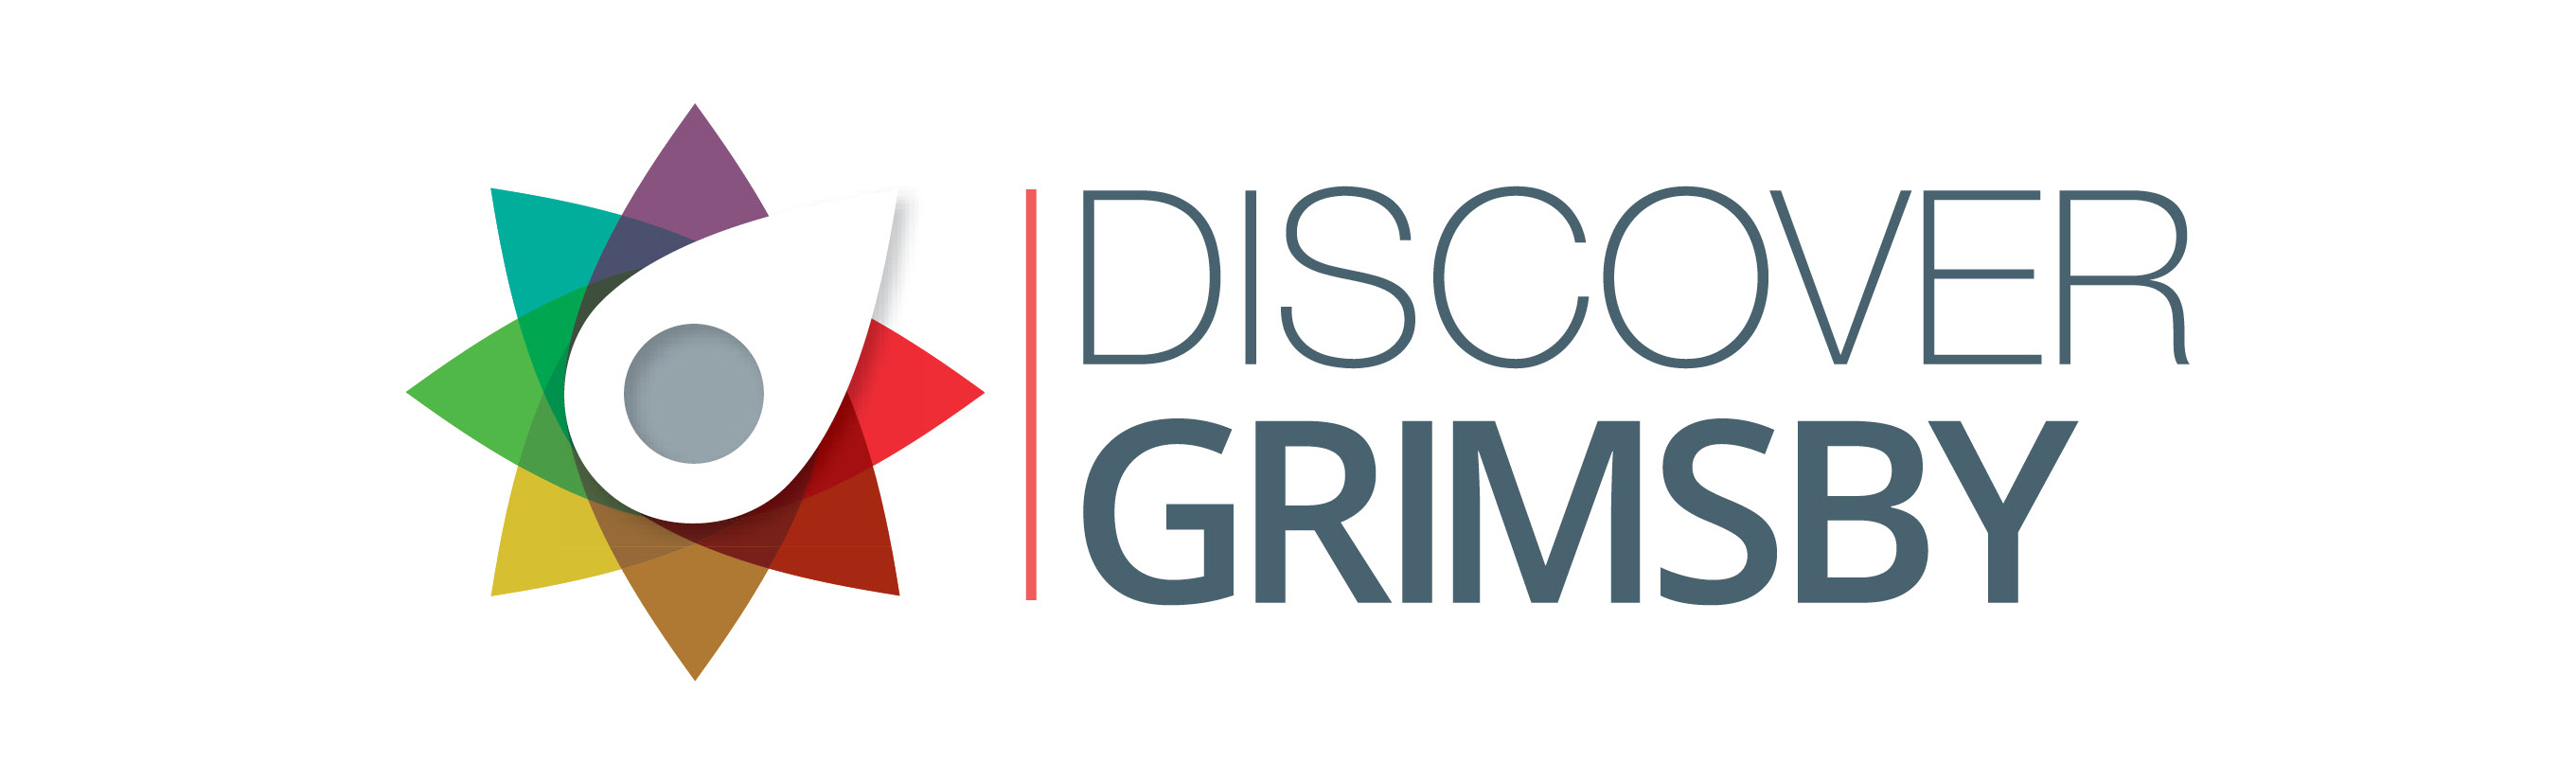 DiscoverNEL Grimsby